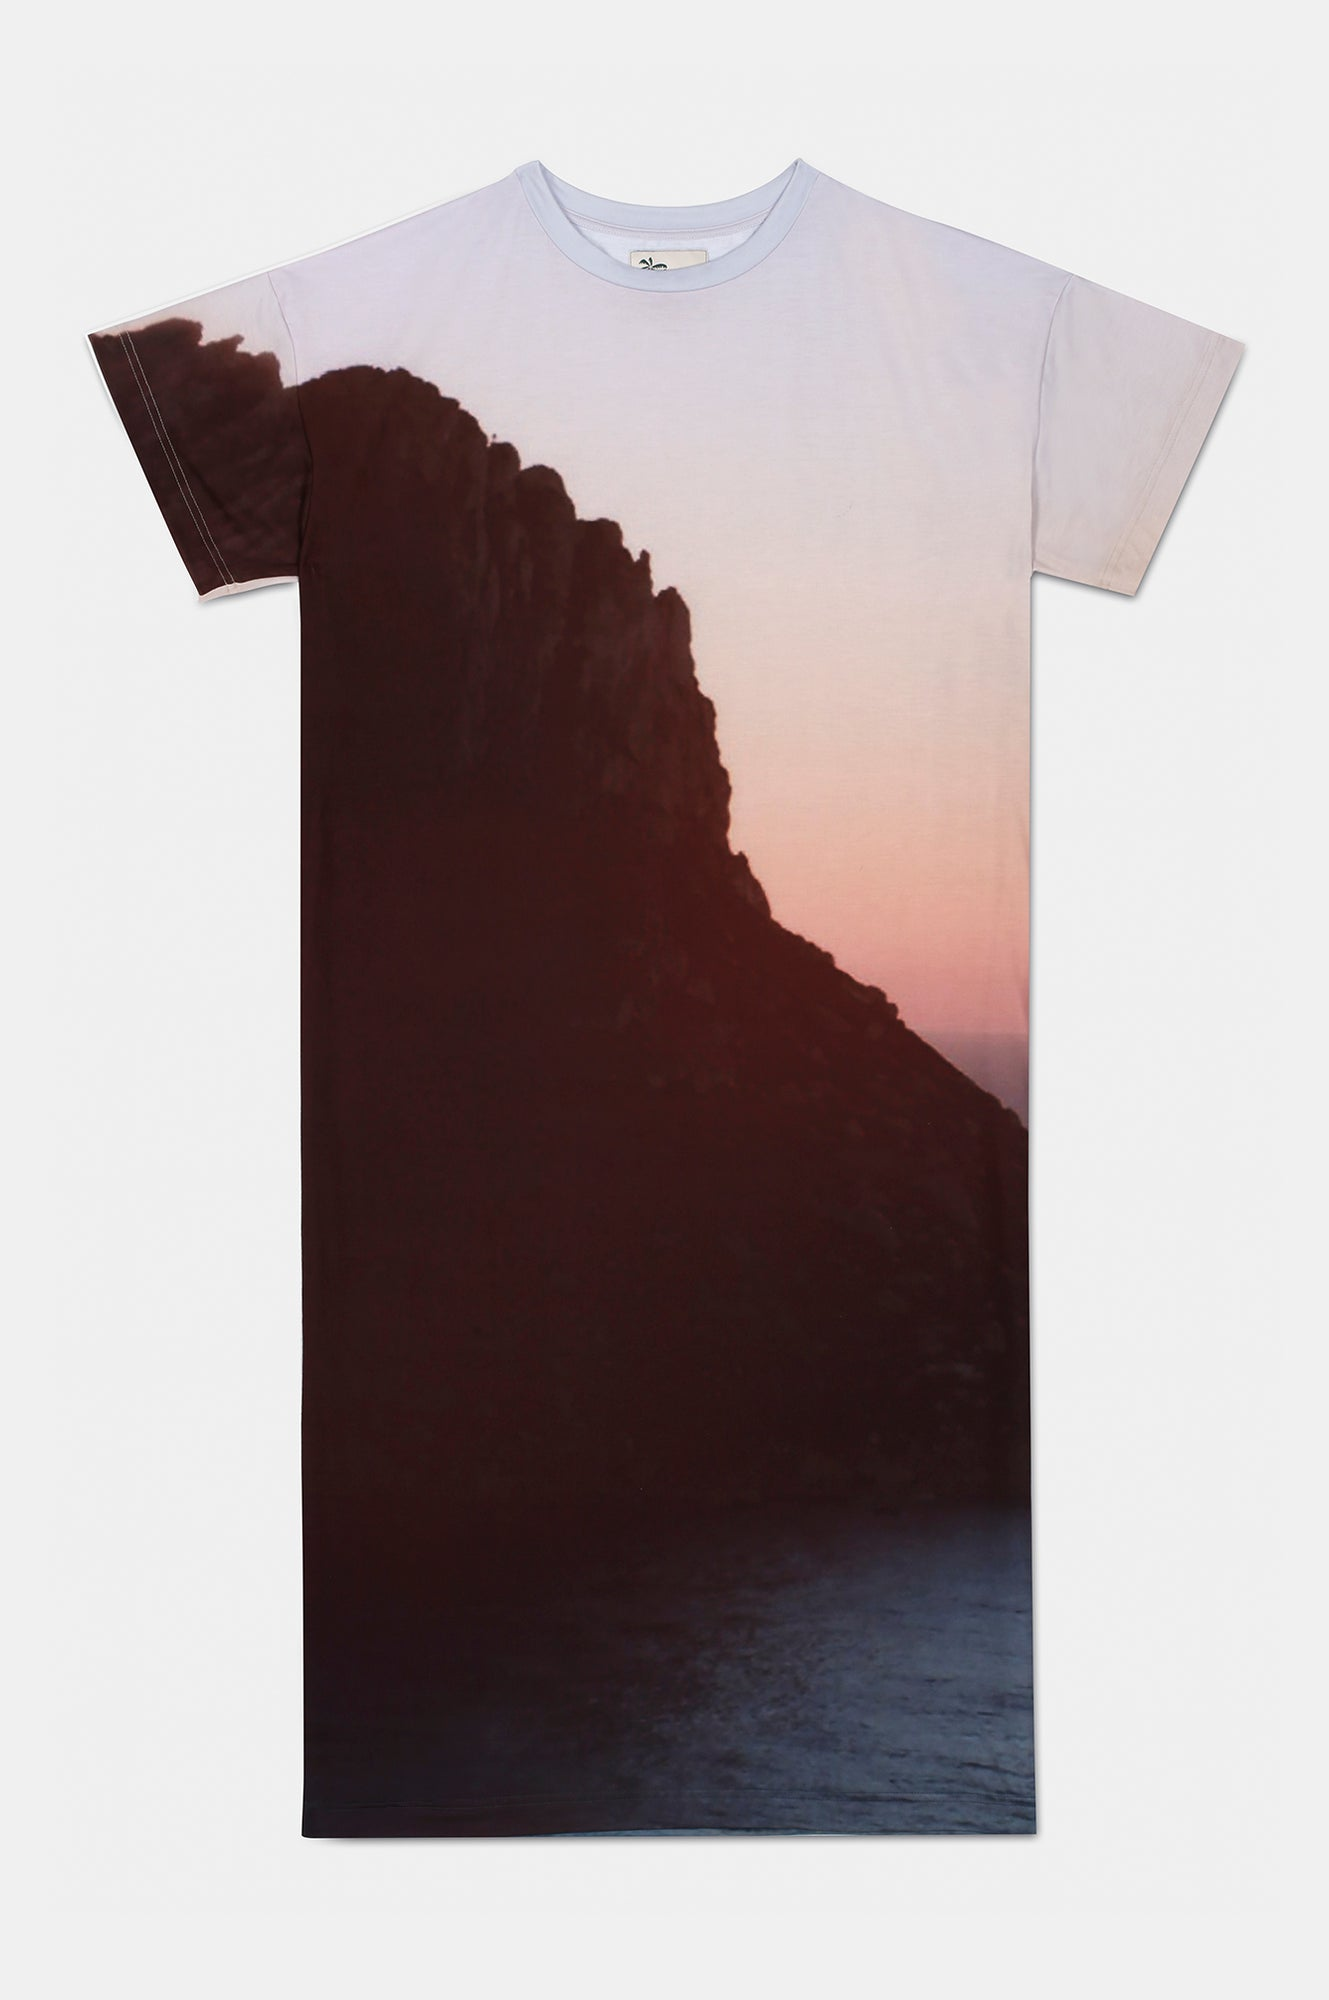 ES VEDRA SUNSET PRINT T-SHIRT DRESS - Esteban Cortazar